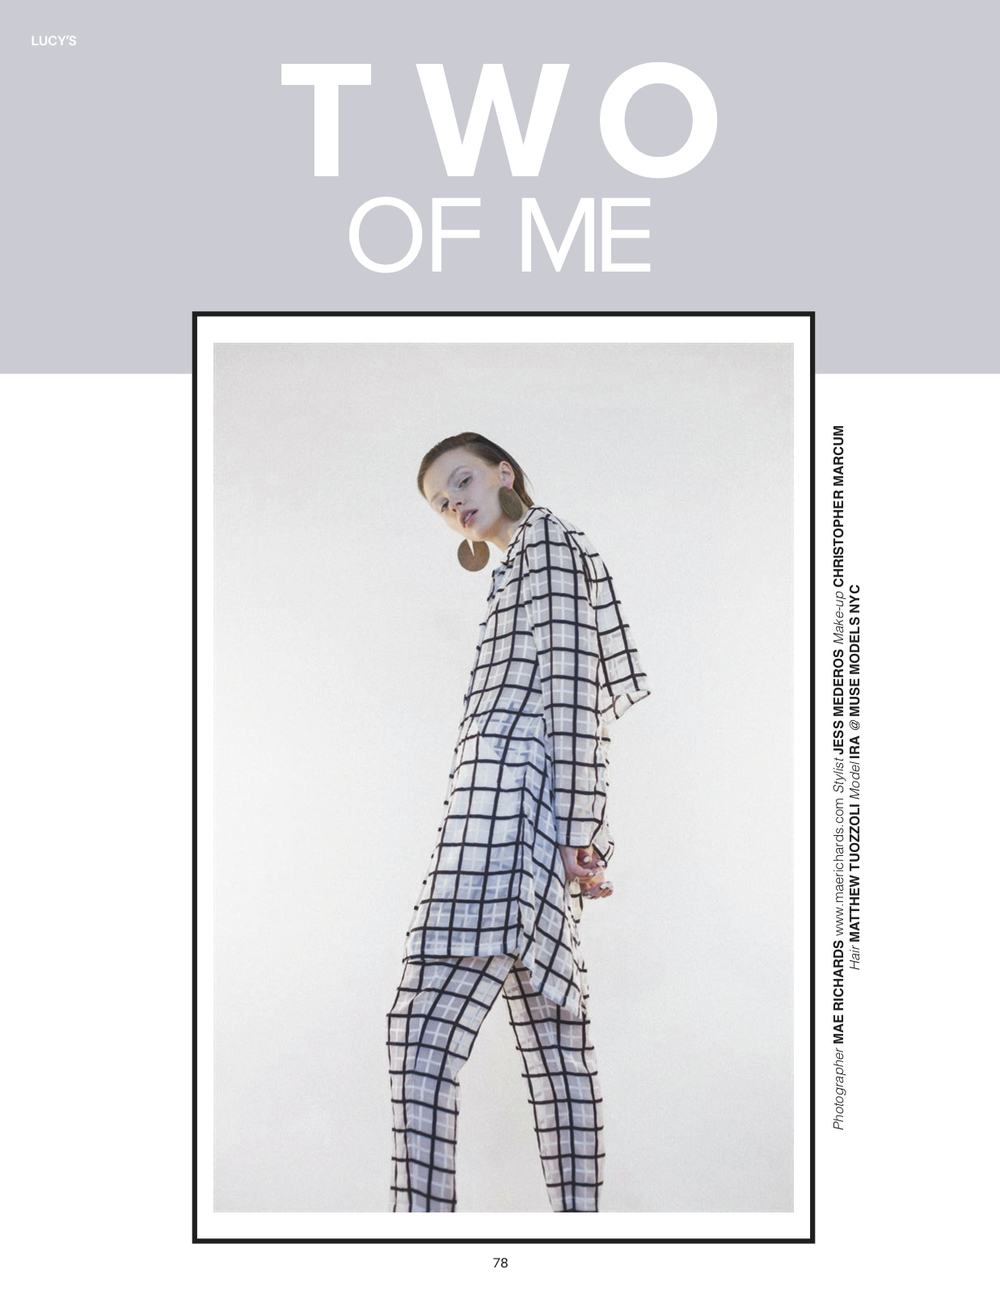 'Two of Me' Editorial Cover Story Lucy's Volume 13